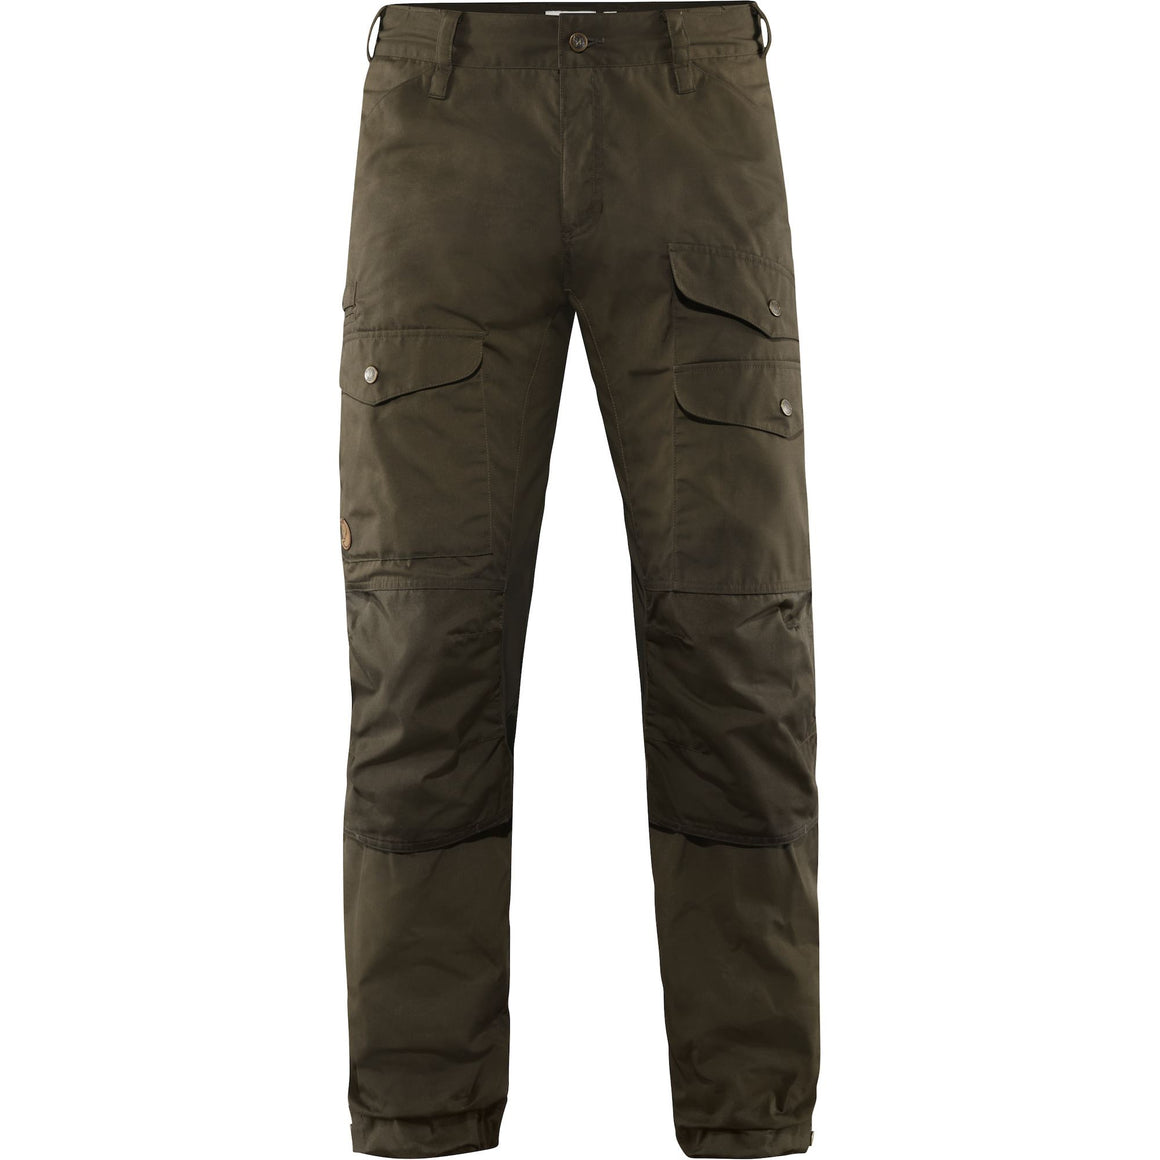 VIDDA PRO VENTILATED TROUSERS M REG